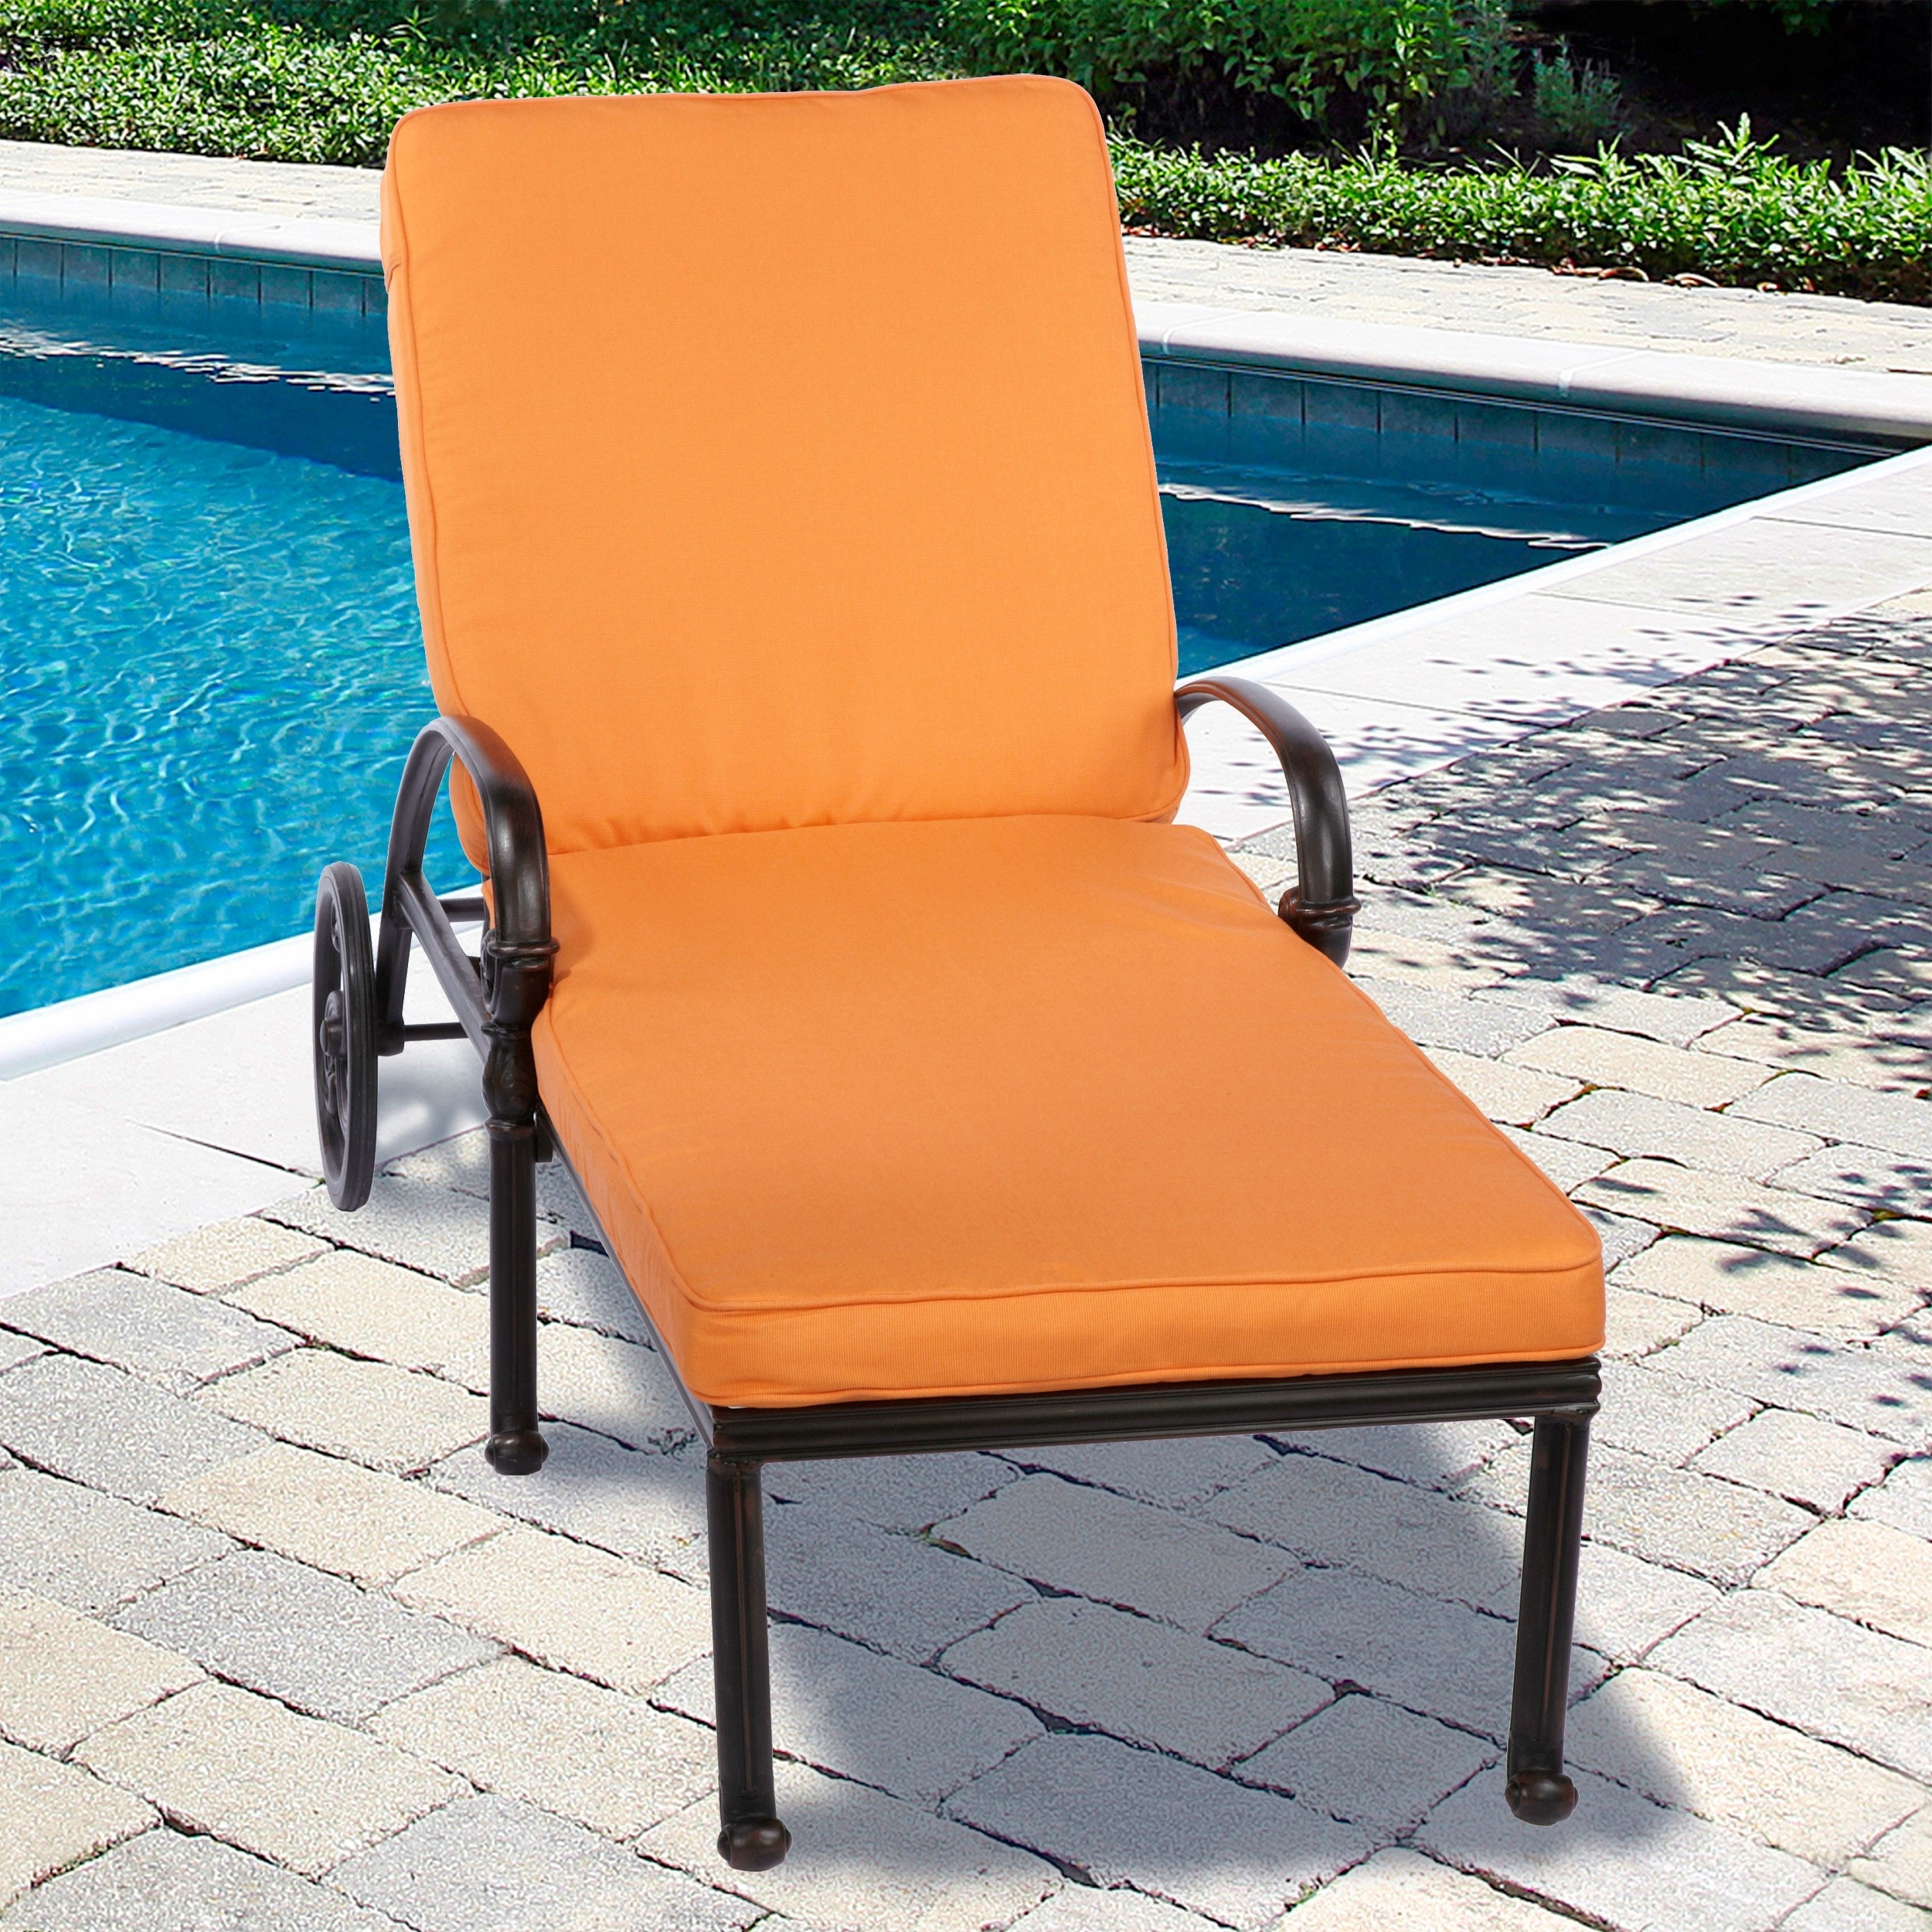 Most Recently Released Outdoor Cushions For Chaise Lounge Chairs For Convertible Chair : Outdoor Furniture Cushions Clearance Outside (View 12 of 15)